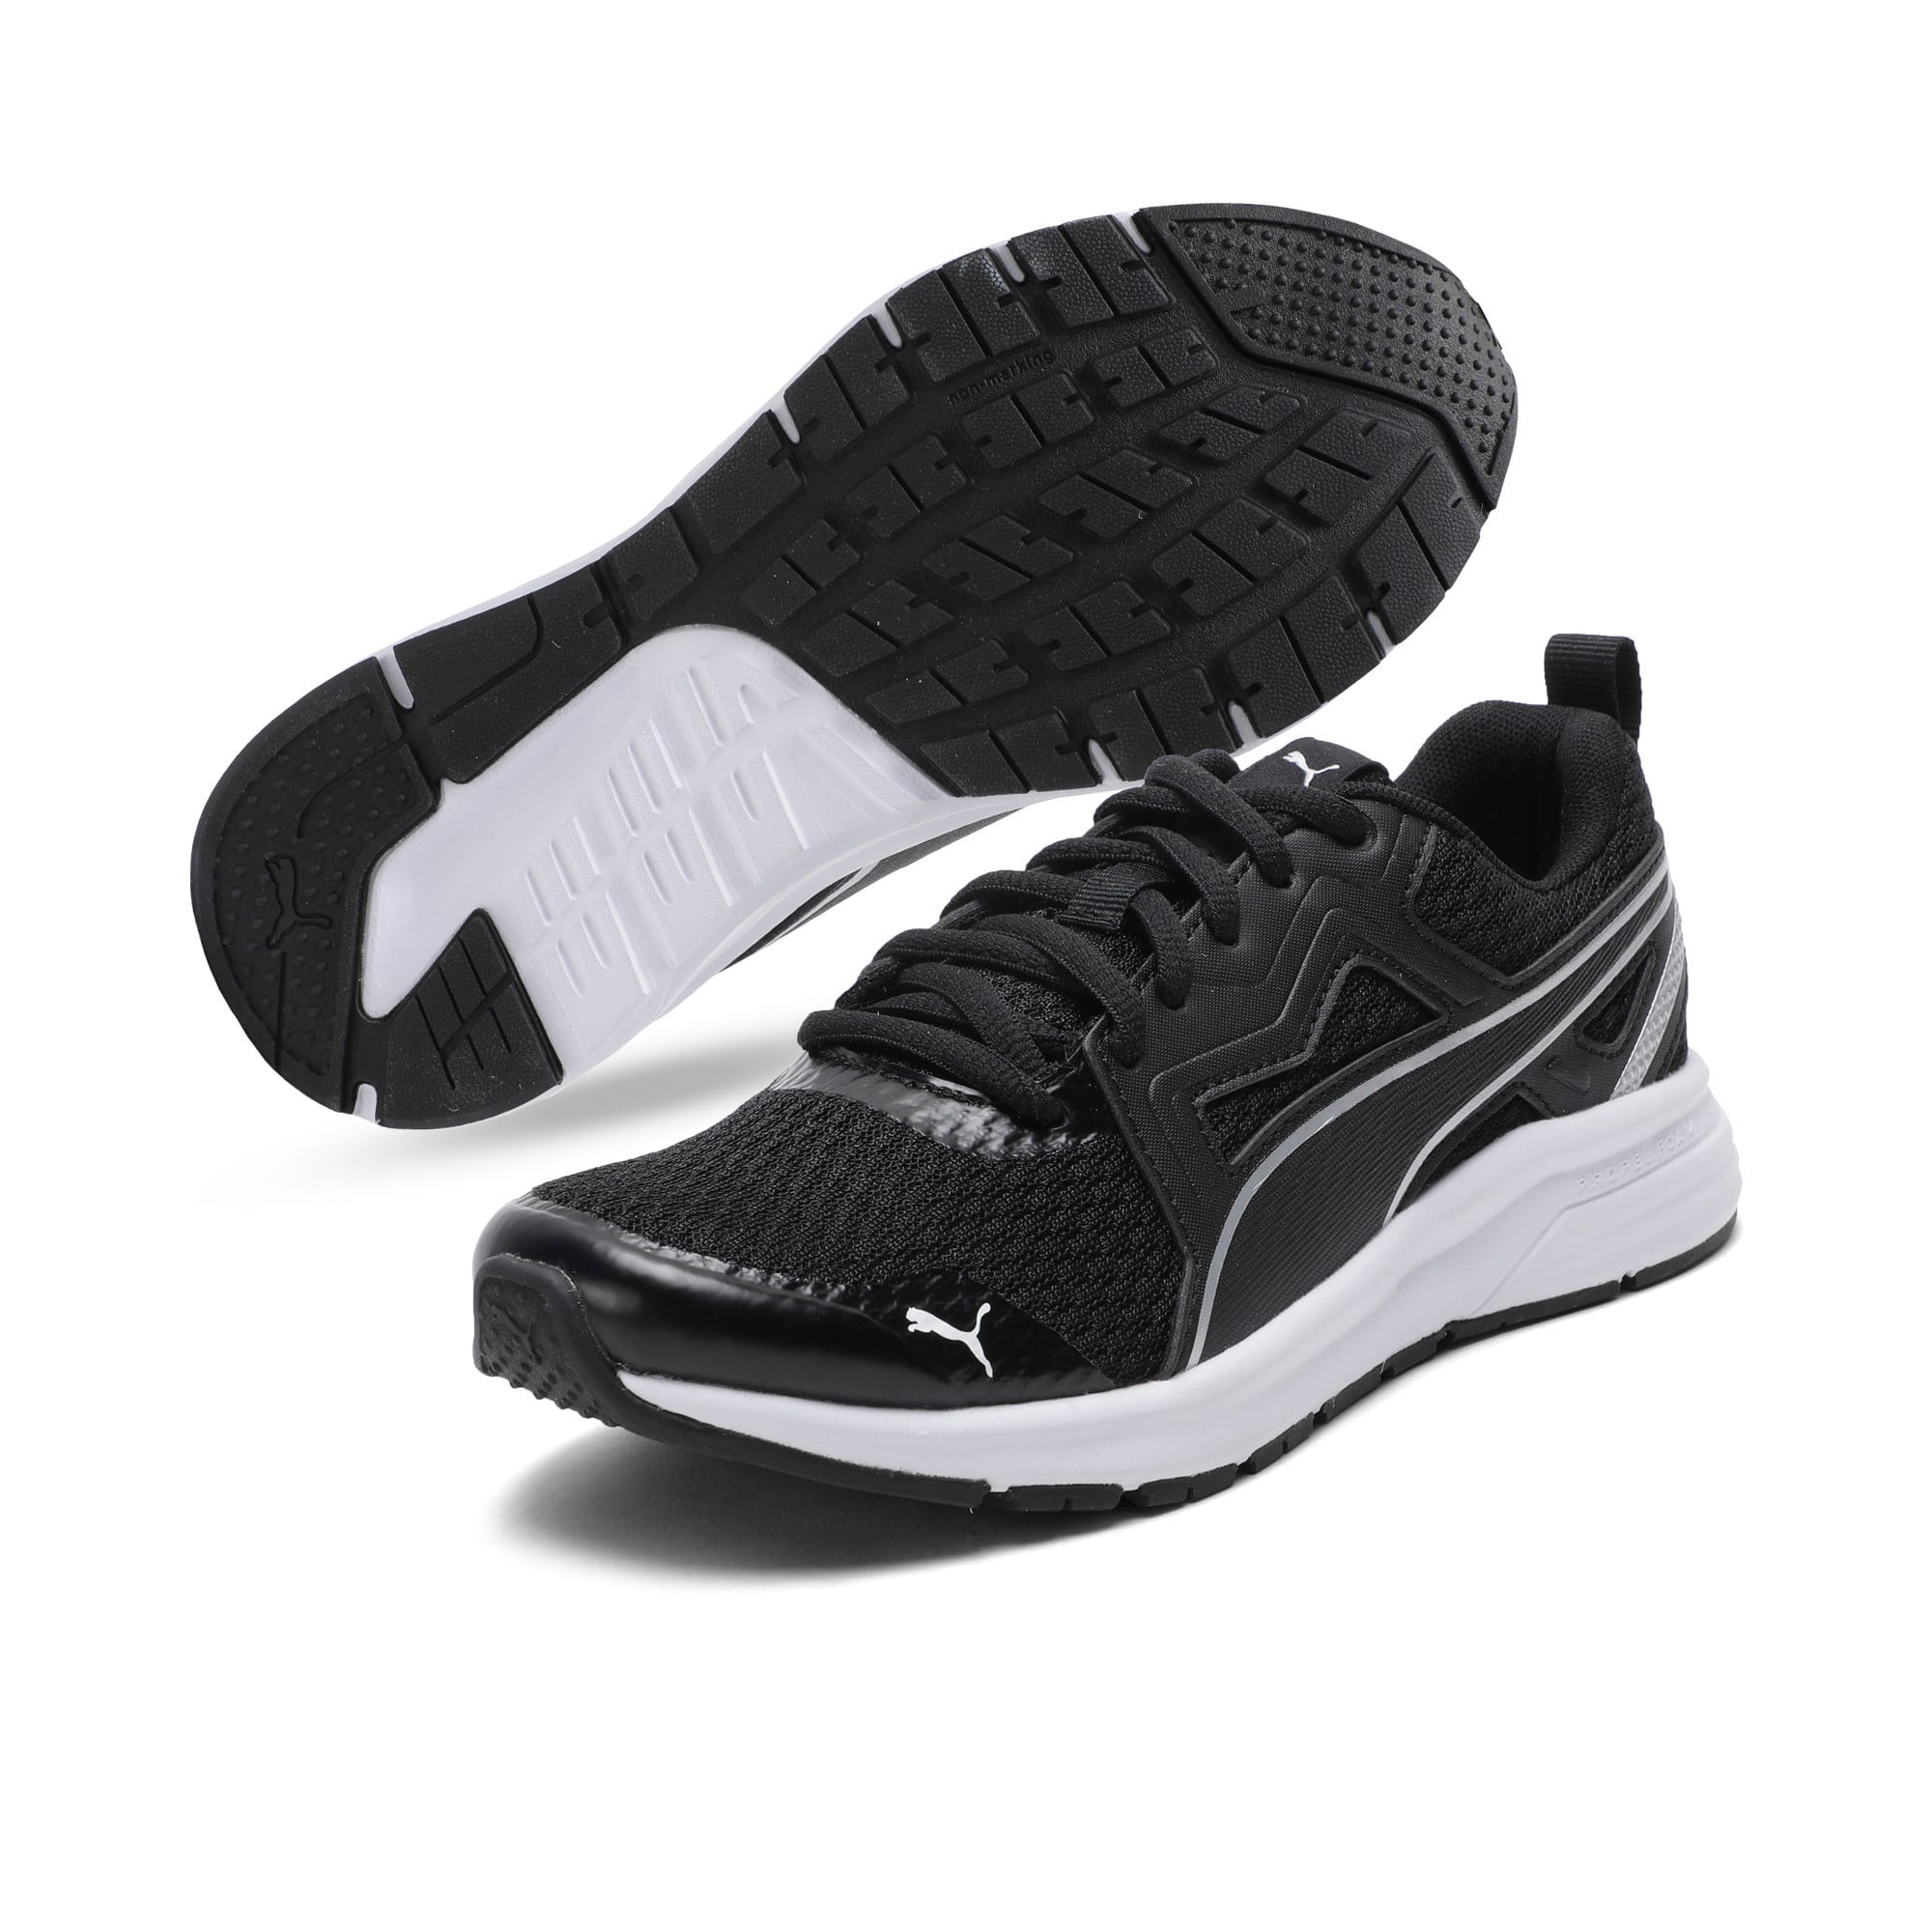 Thumbnail 2 of Pure Jogger Youth Trainers, Black-Silver-Wht-Nrgy Yellow, medium-IND